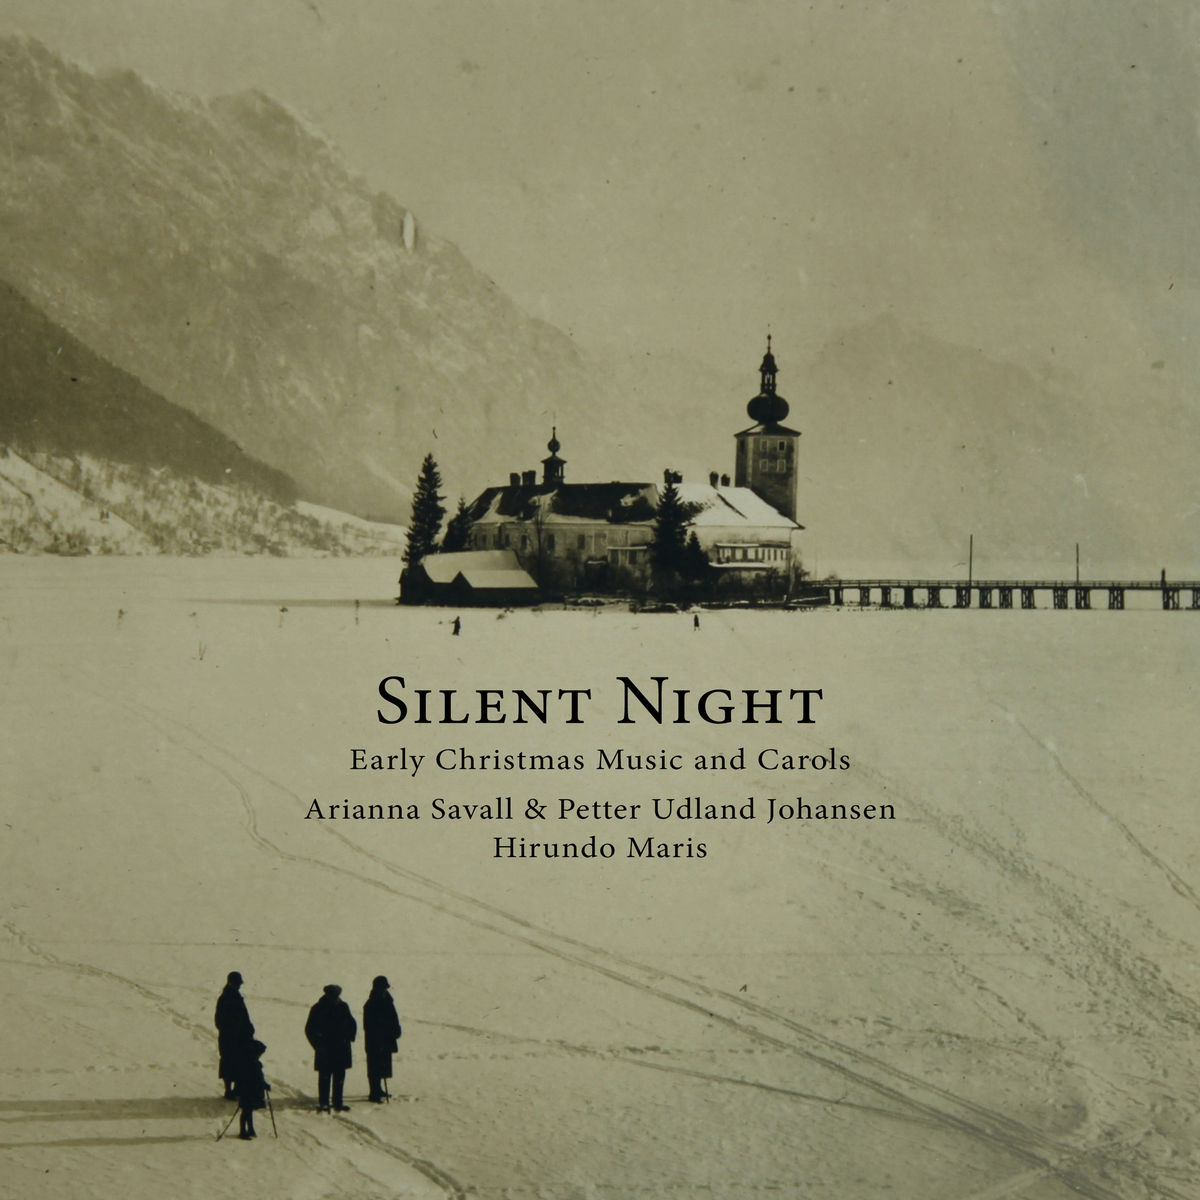 cd critique cd review sur classiquenews arianna_savall_petter_udland_johansen__hirundo_maris-silent_night_-_early_christmas_music_and_carols_a